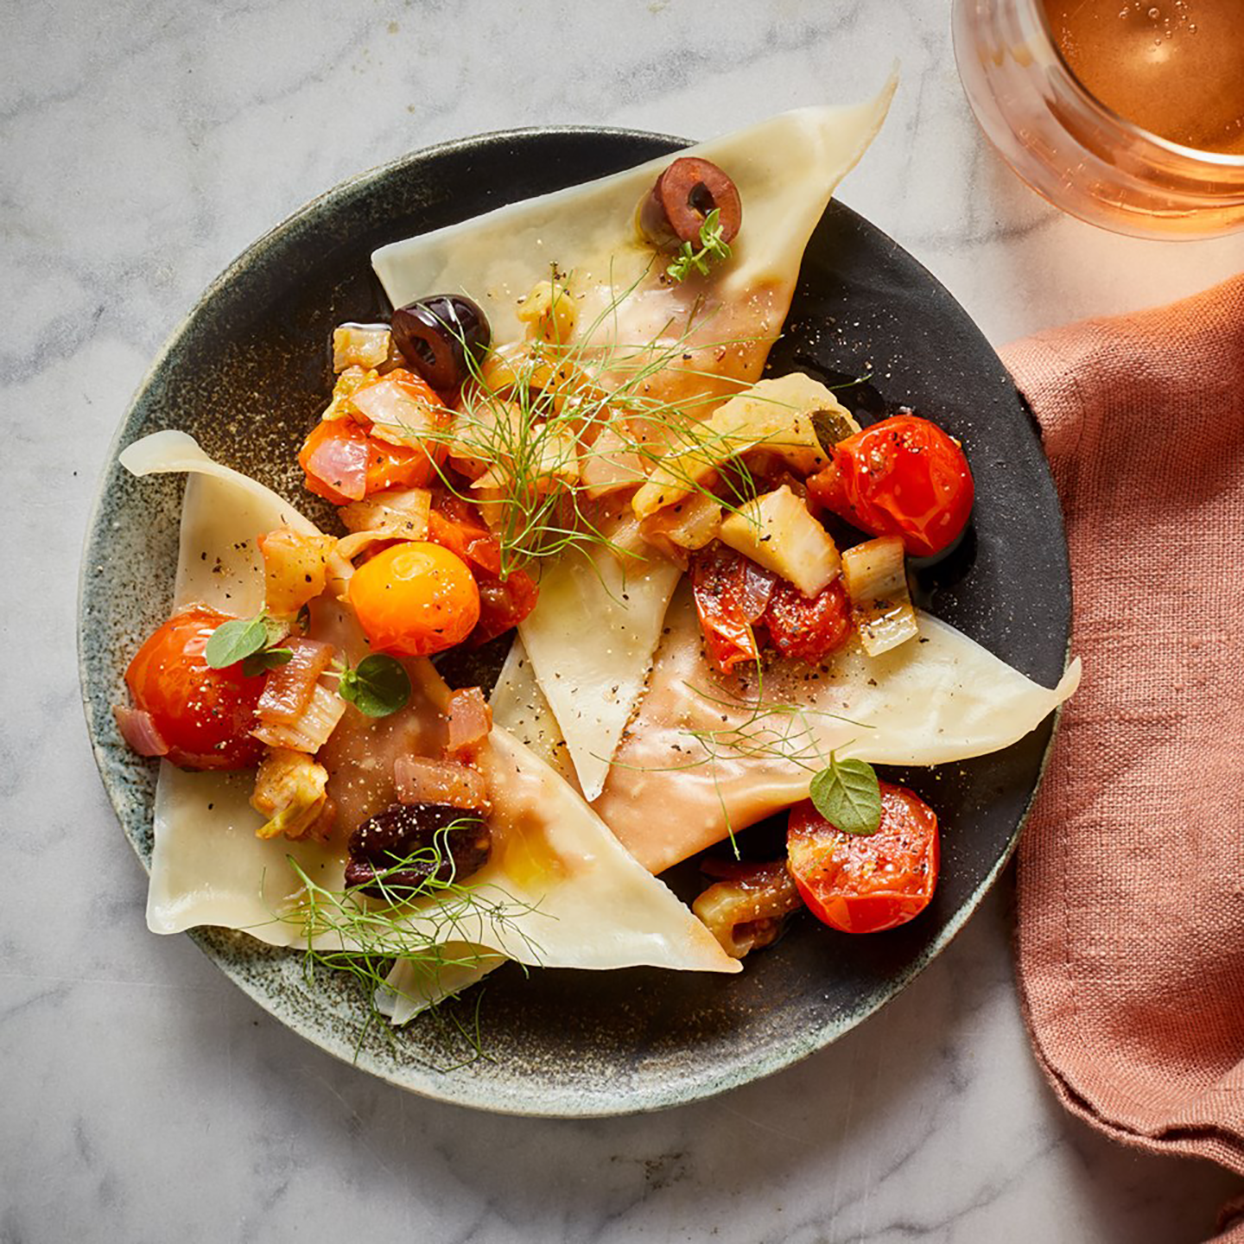 This easy ravioli recipe features exotic North African Mediterranean flavors. The sweet pumpkin takes on the fennel and oregano flavors well; the salty olives and cheese combined with acidic tomatoes and lemon balances everything out. Look for wonton wrappers in the refrigerated section of the deli.